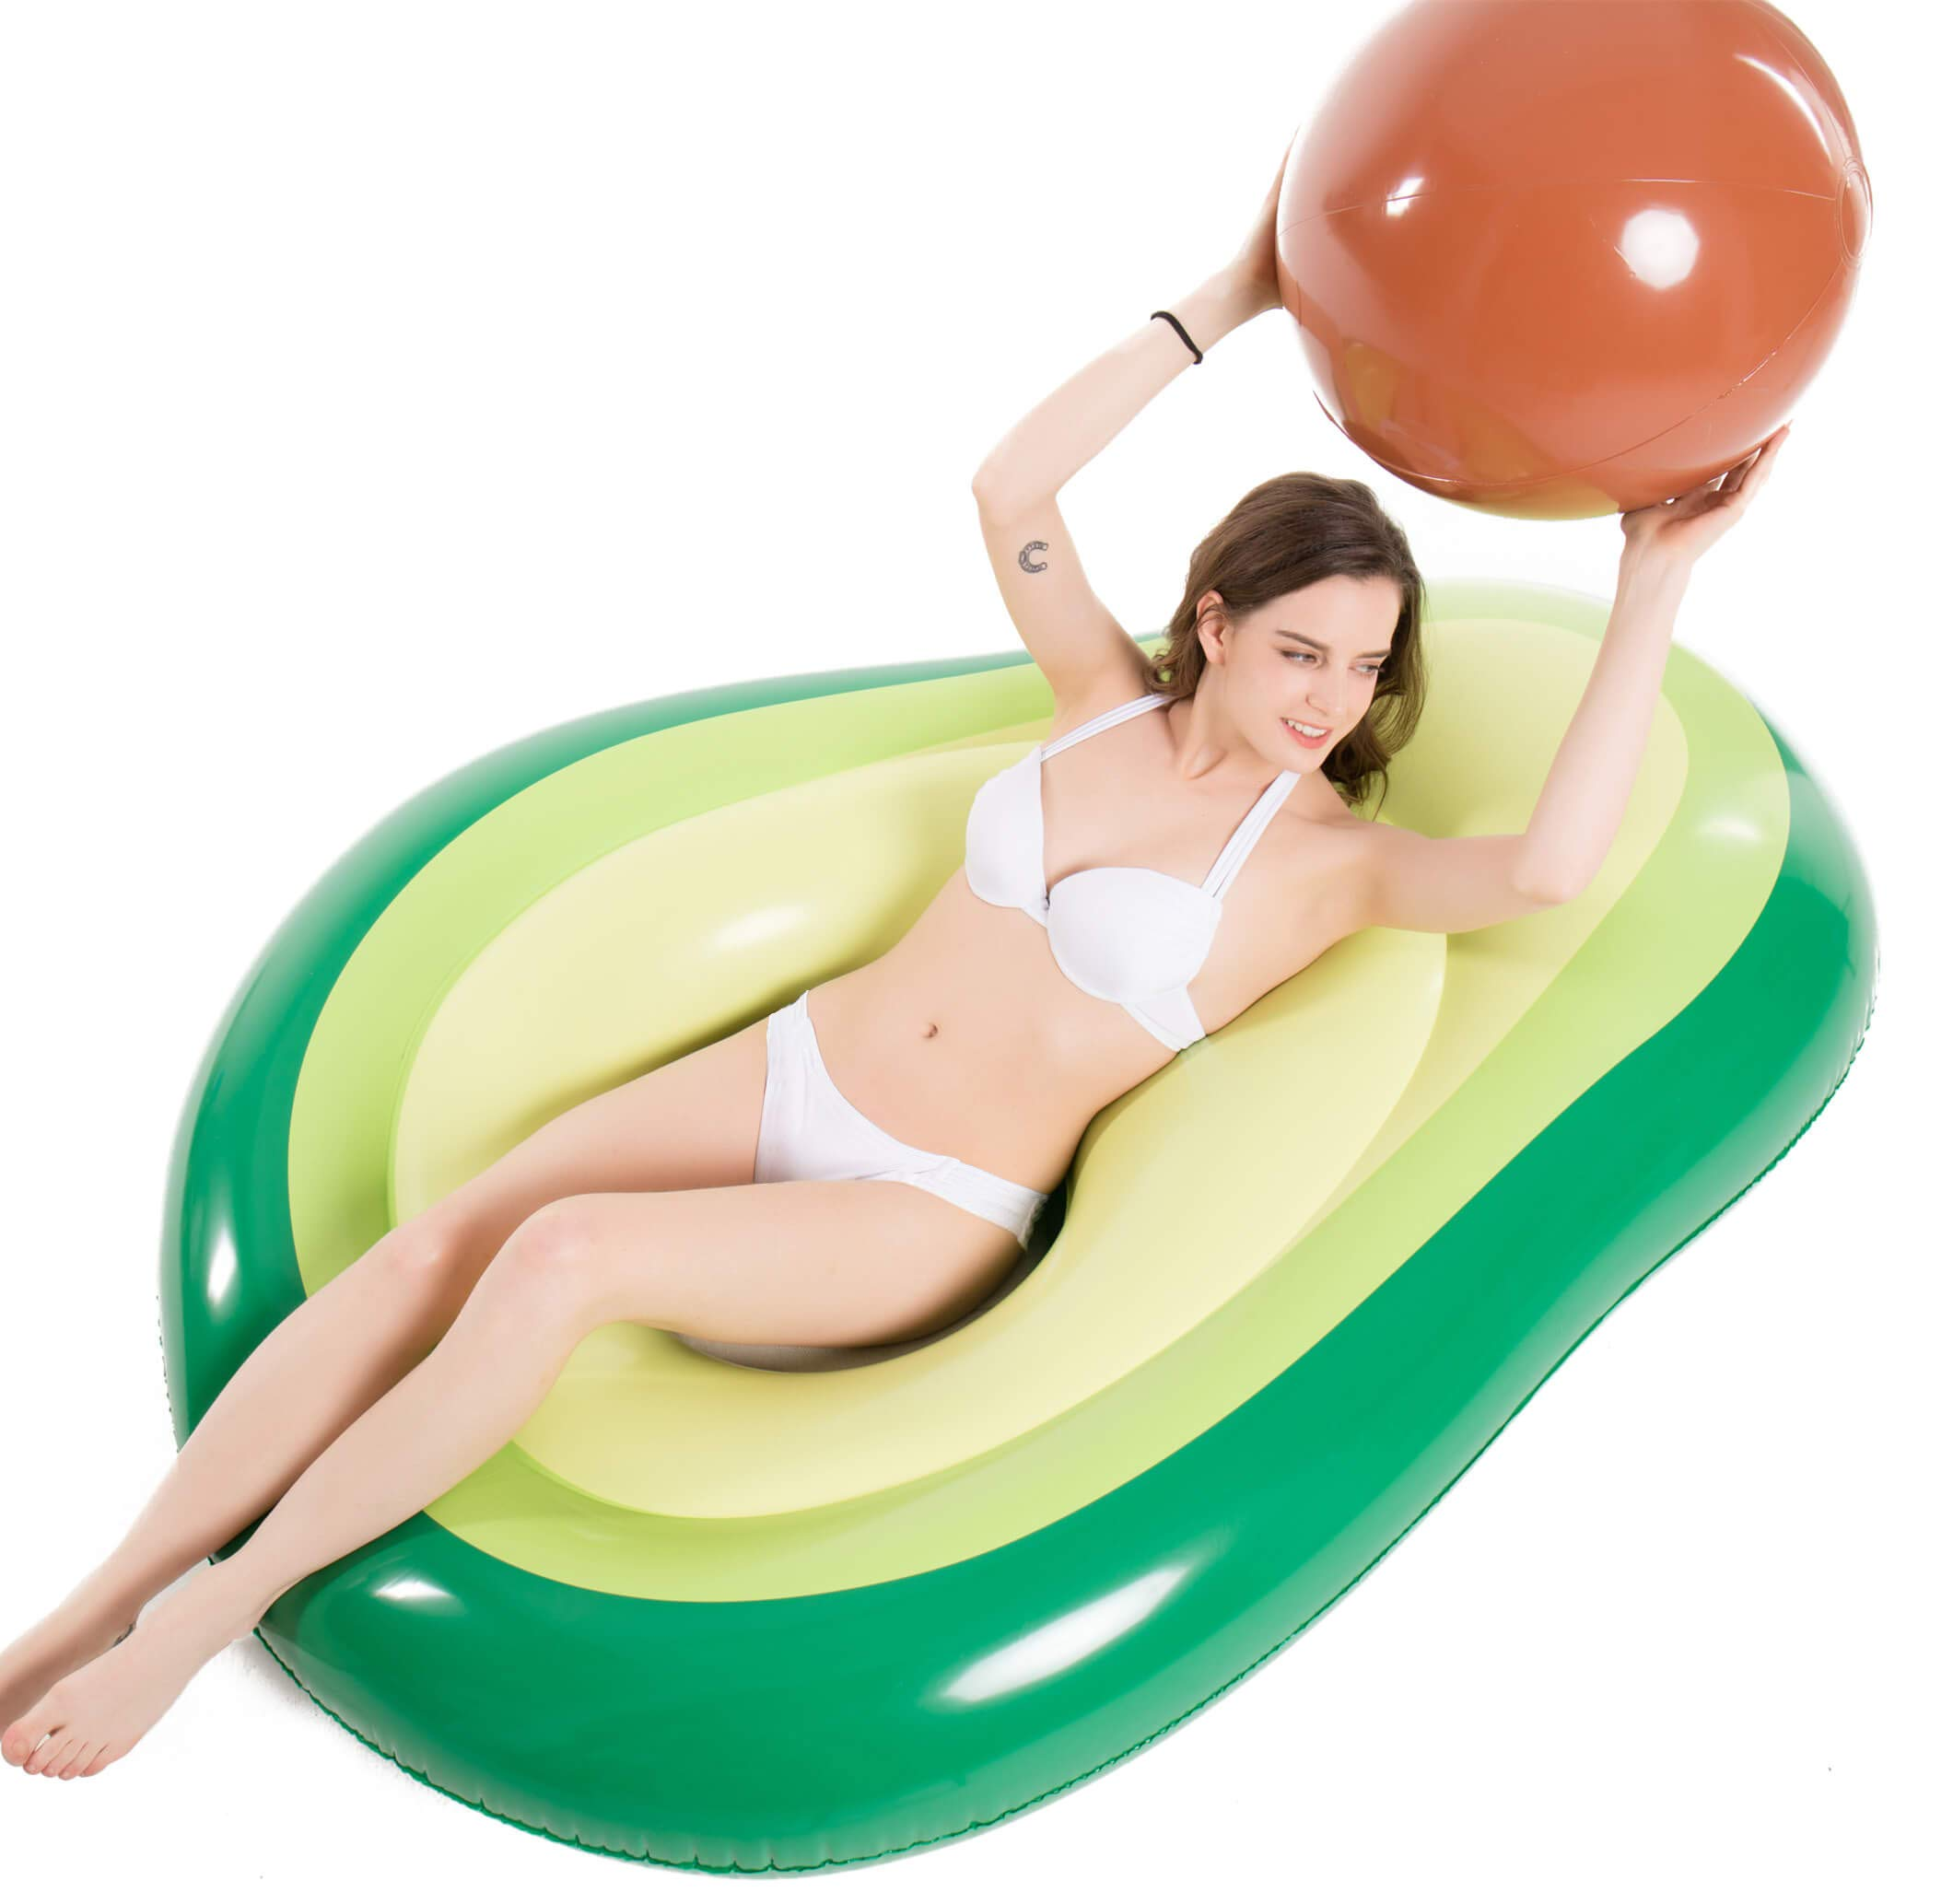 Jasonwell Inflatable Avocado Pool Float - Floatie with Ball Water Fun Large Blow Up Summer Beach Swimming Floaty Party Lounge Raft Kids Adults